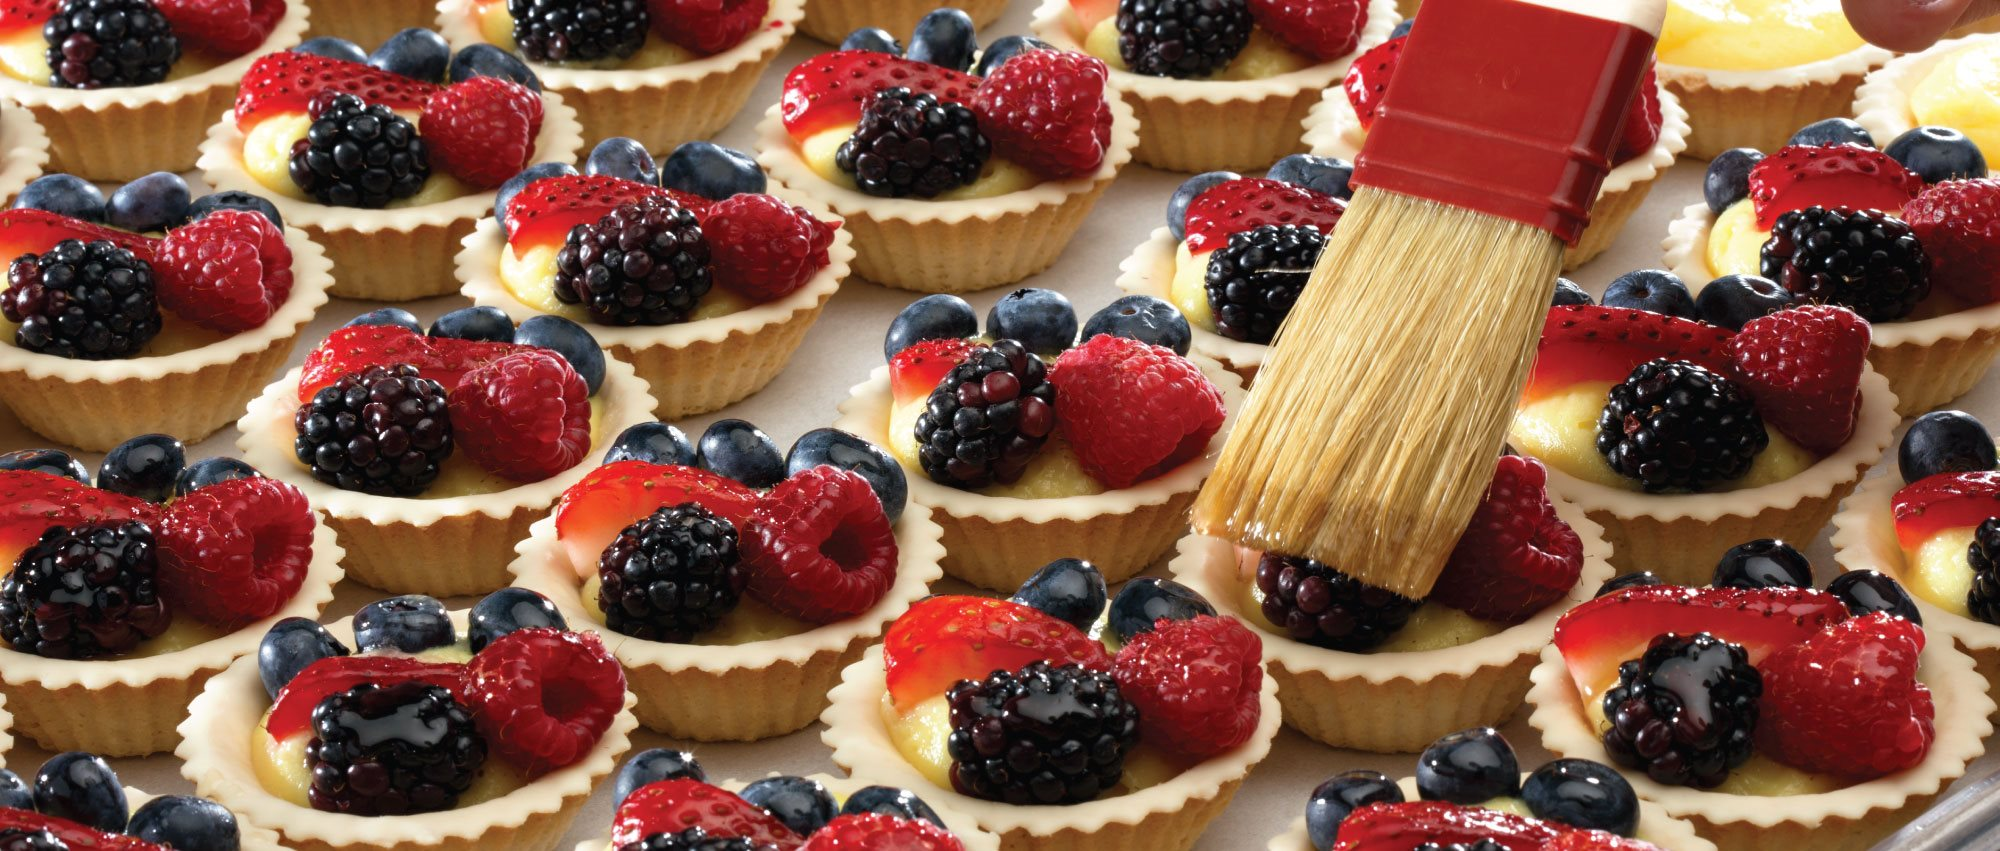 Bakery-Outlet-Fruit-Tarts-05-2020